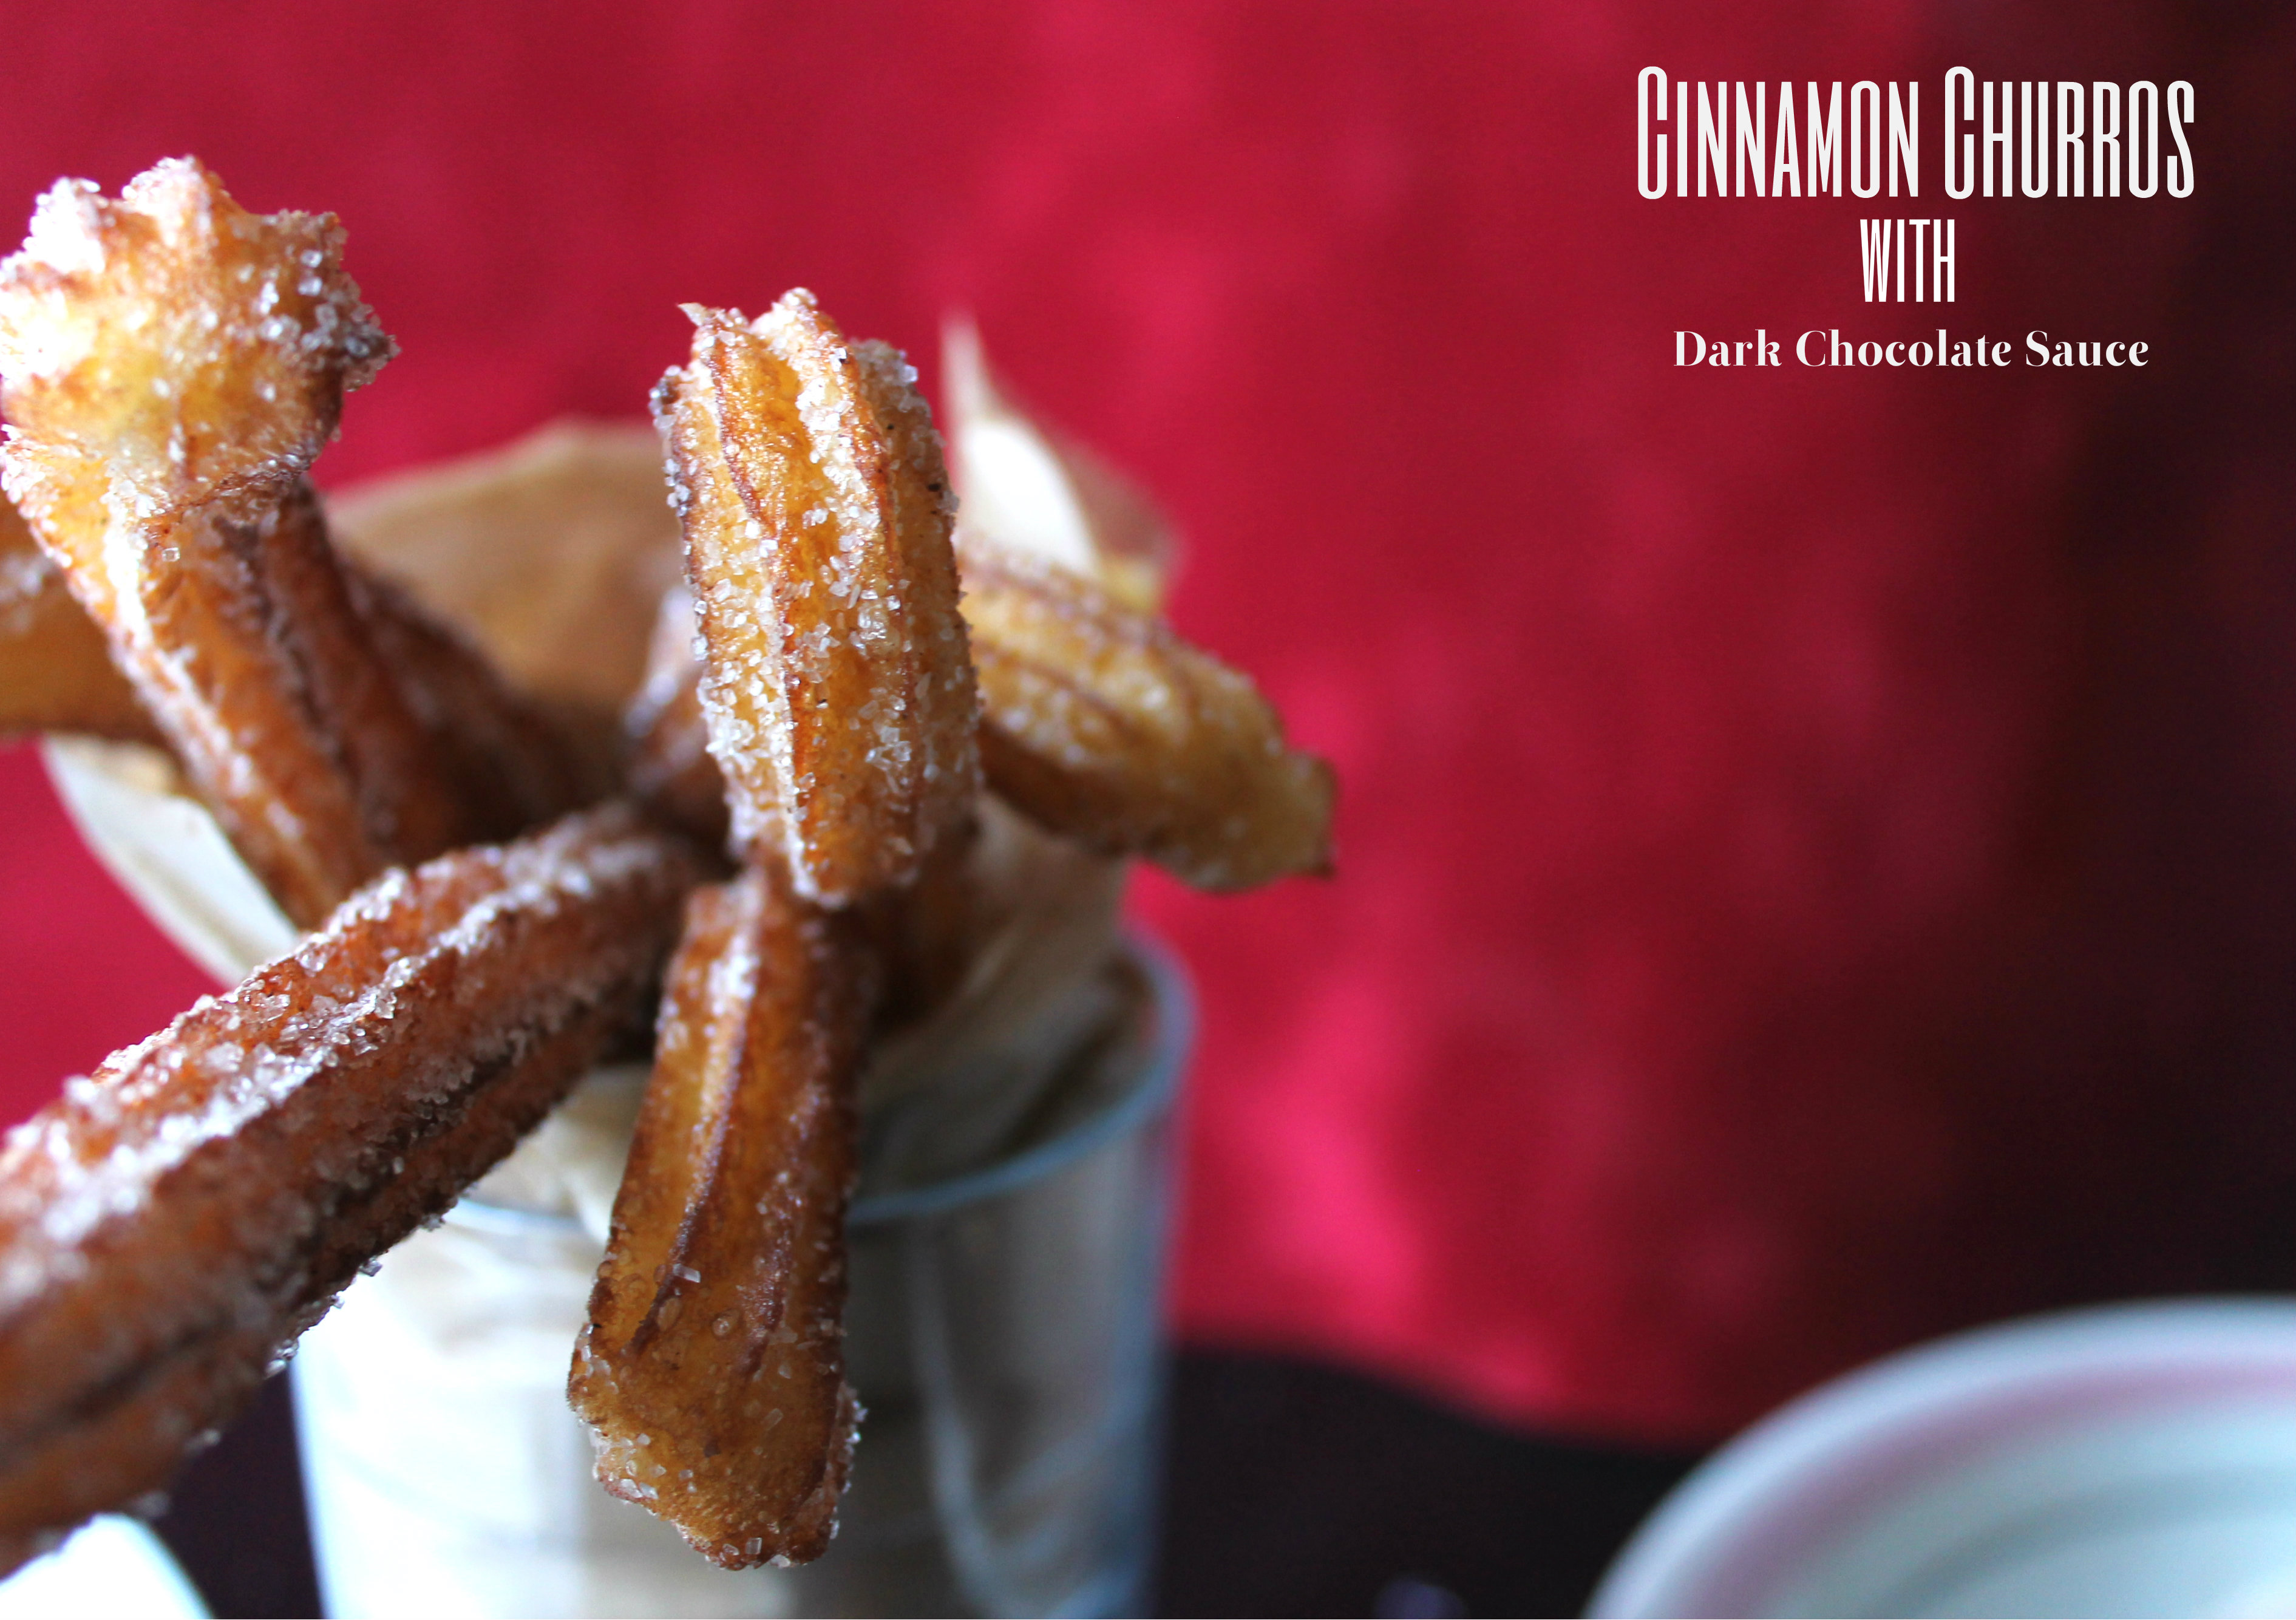 cinnamon churros with dark chocolate sauce